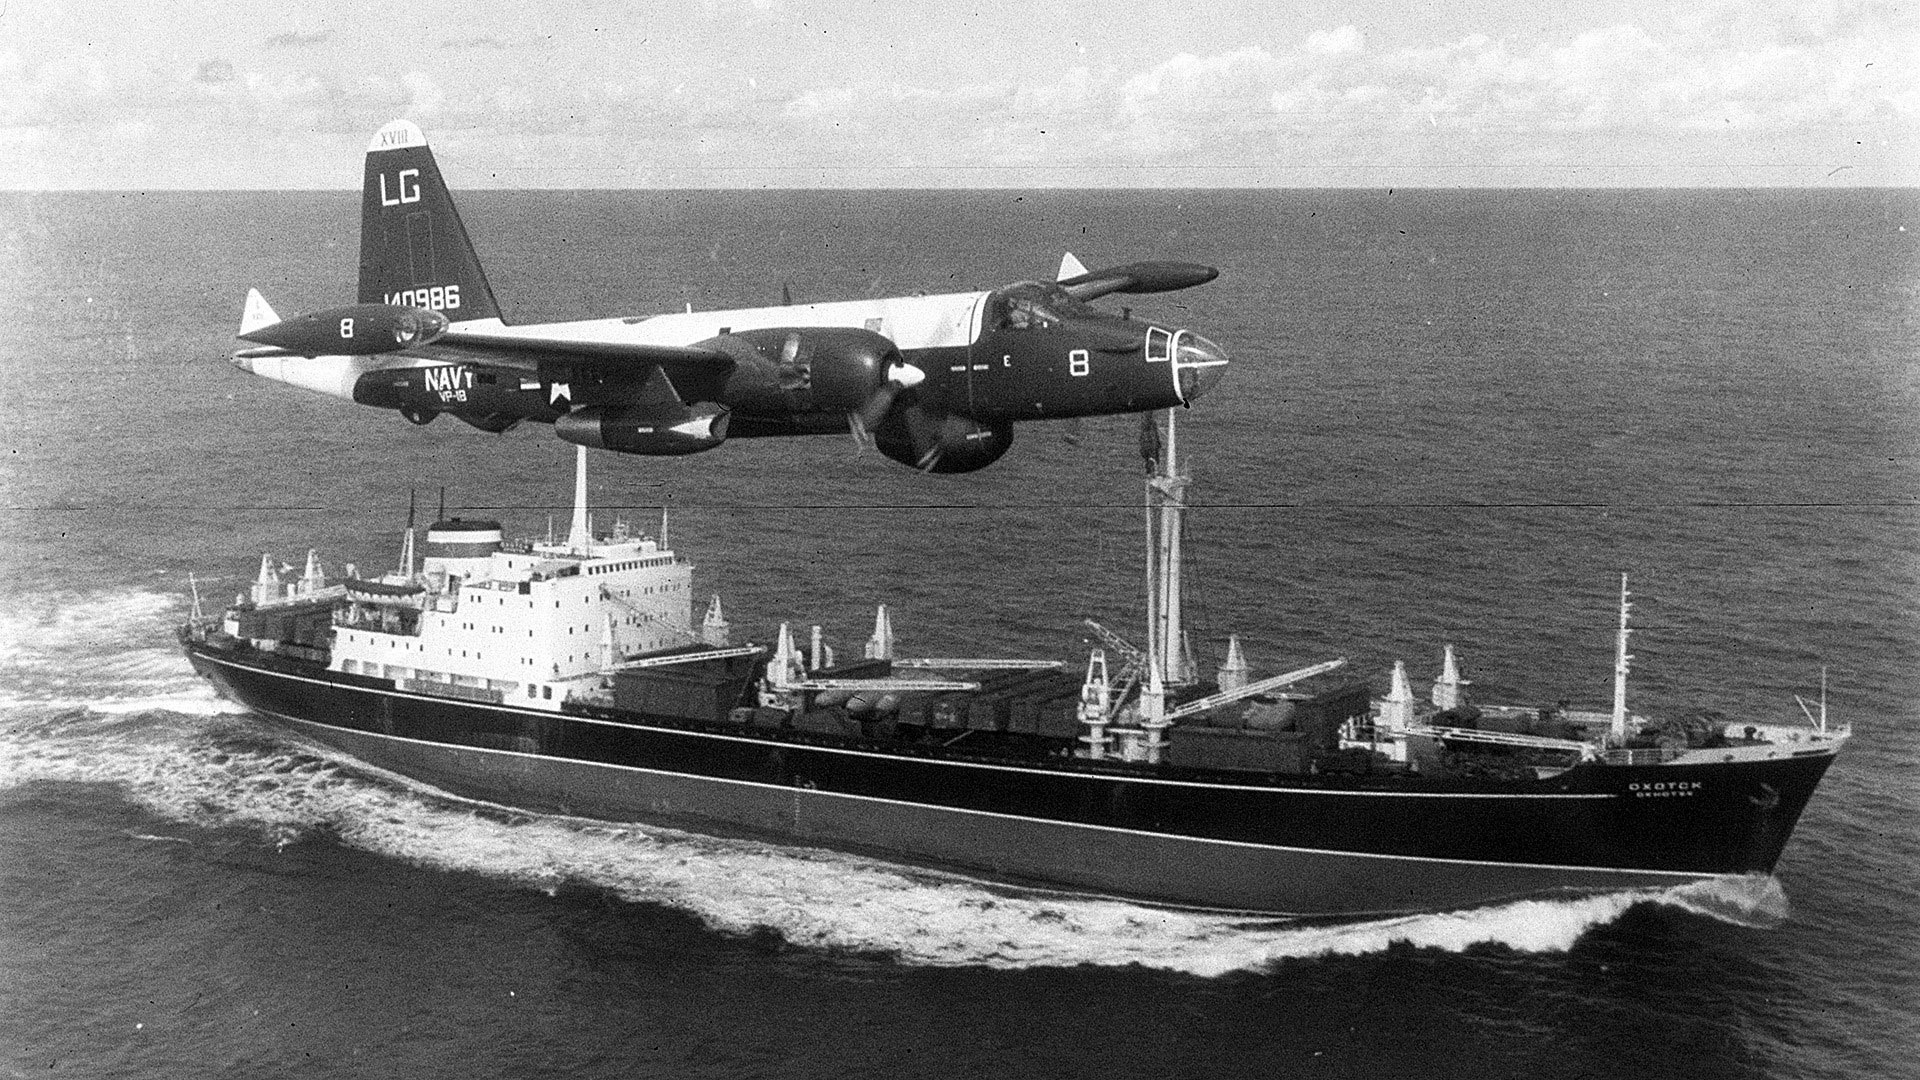 A P2V Neptune US patrol plane flying over a Soviet freighter during the Cuban missile crisis.